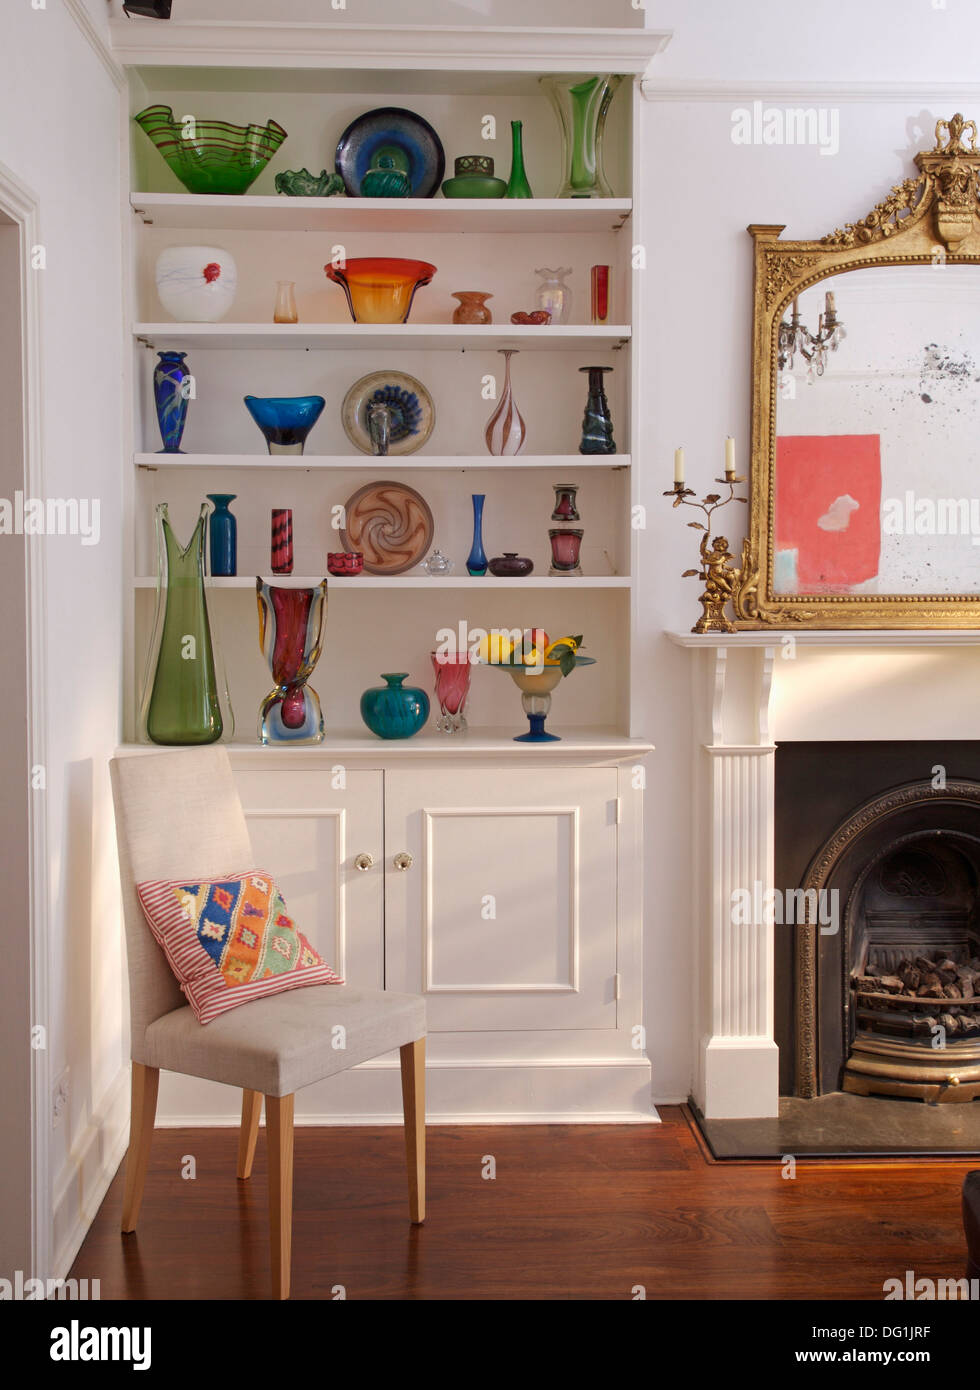 Built In Cabinets Beside Fireplace Collection Of Colorful Sixties Glassware On White Built In Shelves